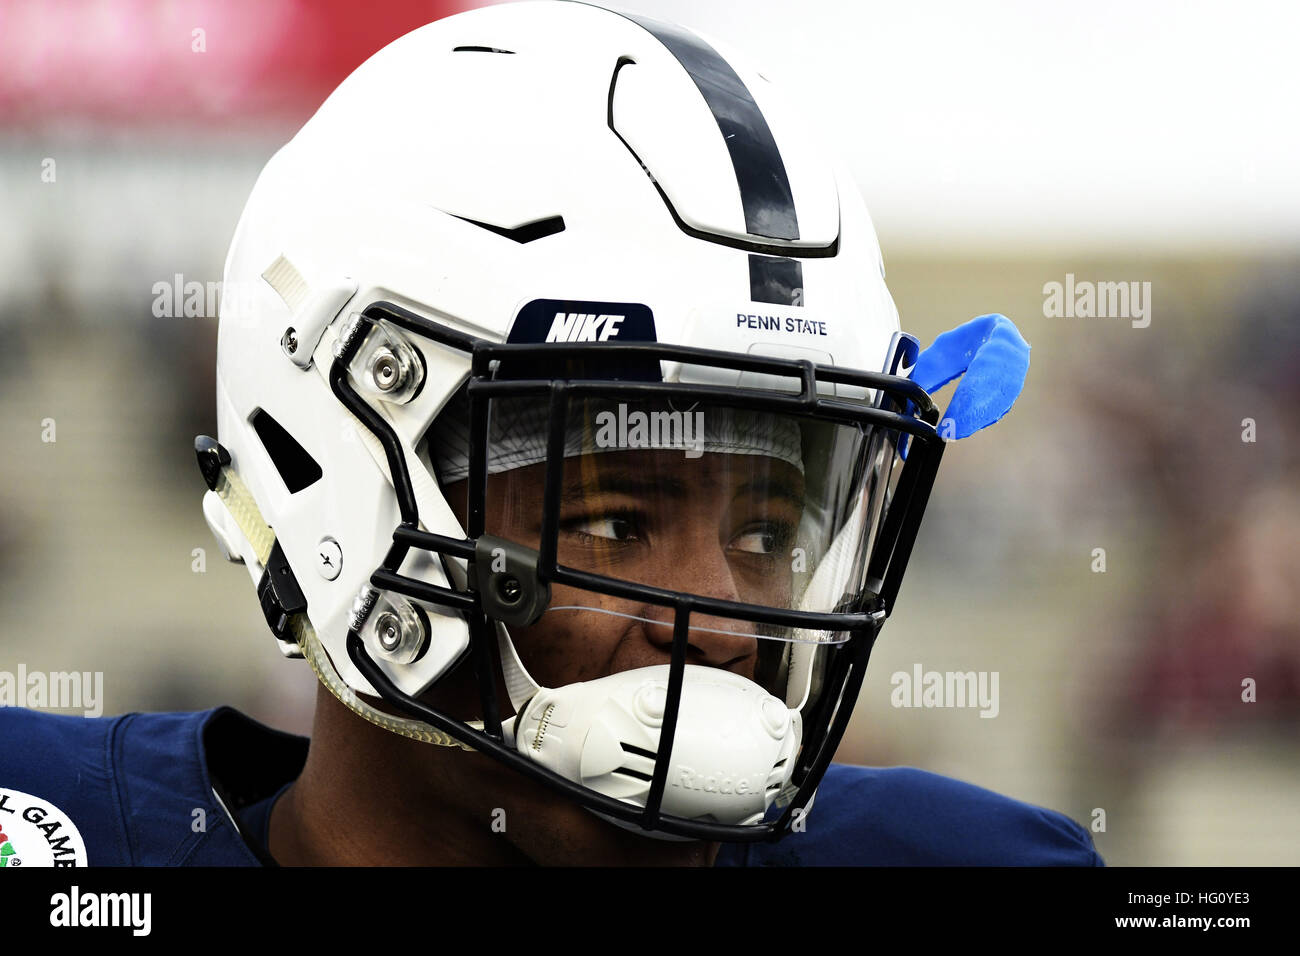 Pasadena, Californie, USA. 2 Jan, 2017. Saquon running back Barkley de la Penn State Nittany Lions en action lors Photo Stock